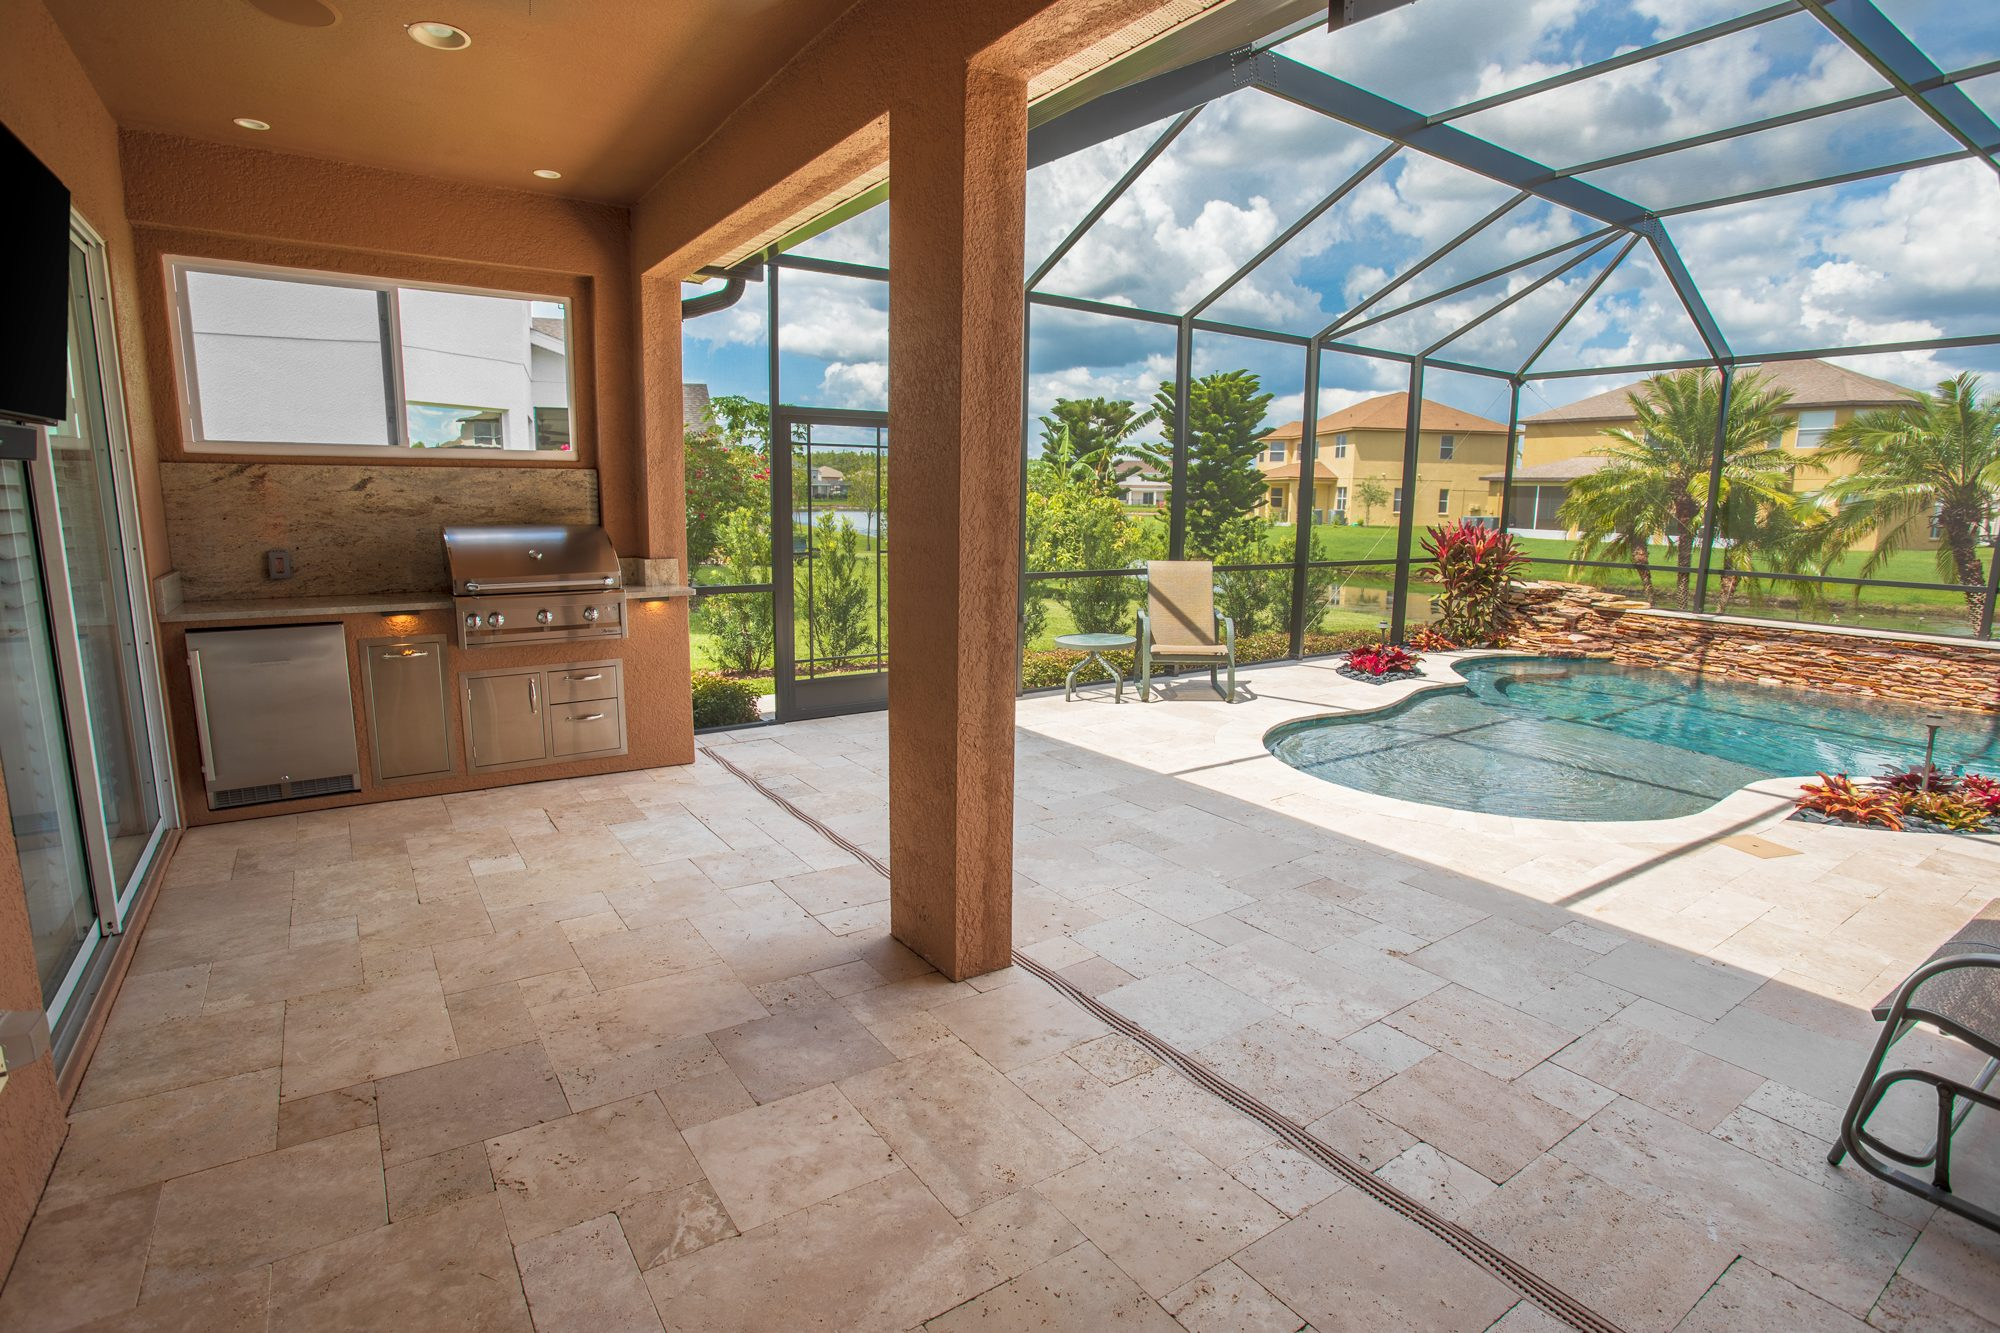 Custom Outdoor Kitchen And Privacy Wall With Window | Tampa, Florida